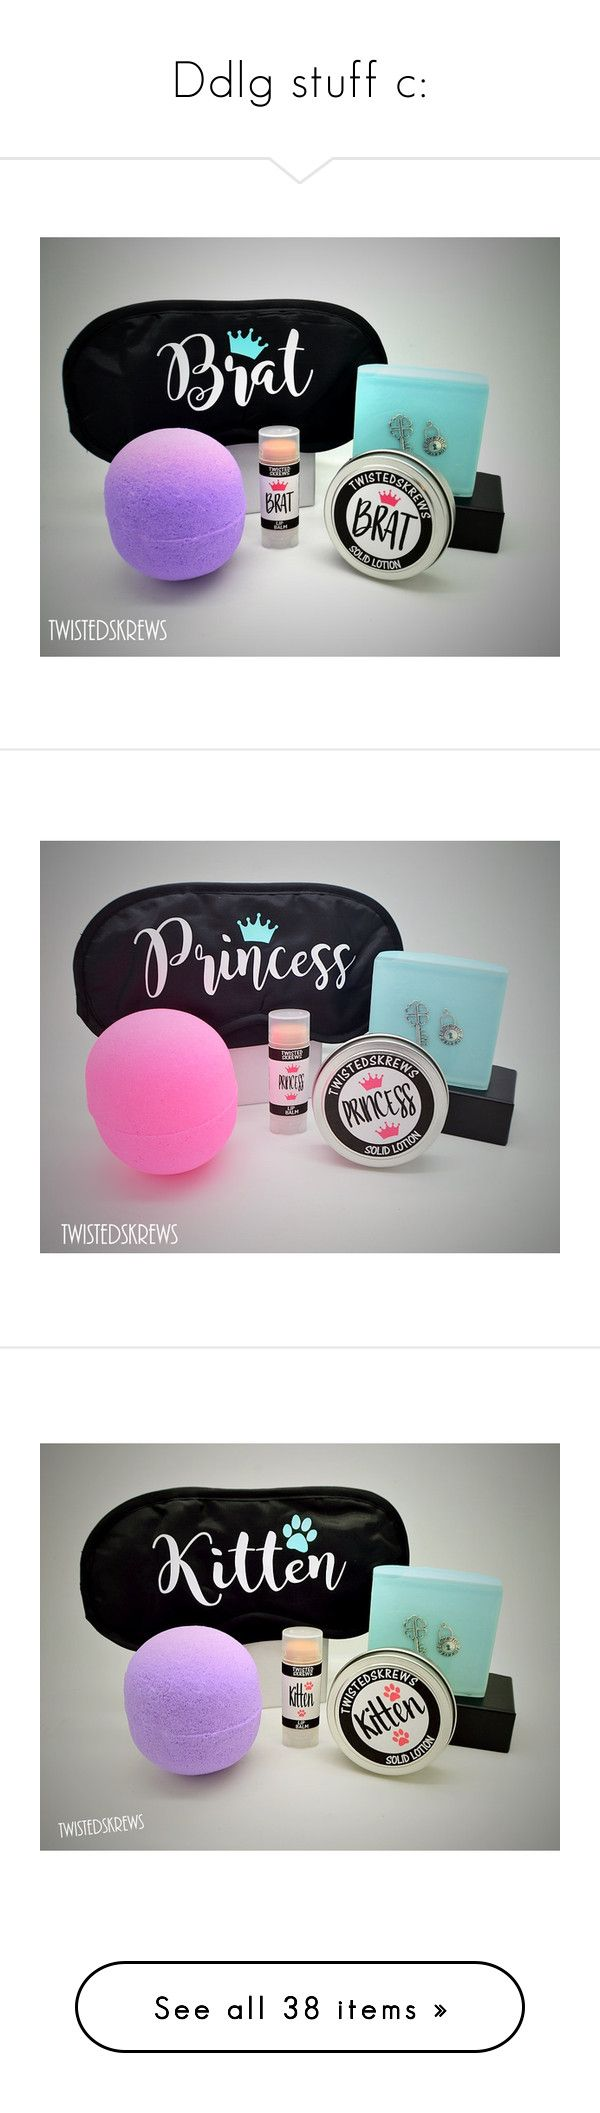 """""""Ddlg stuff c:"""" by nina-fluffin-radke ❤ liked on Polyvore featuring beauty products, gift sets & kits, bath & beauty, grey, spa & relaxation, spa kits & gifts, soap kits, lip balm kit, dark olive and Olympia Le-Tan"""